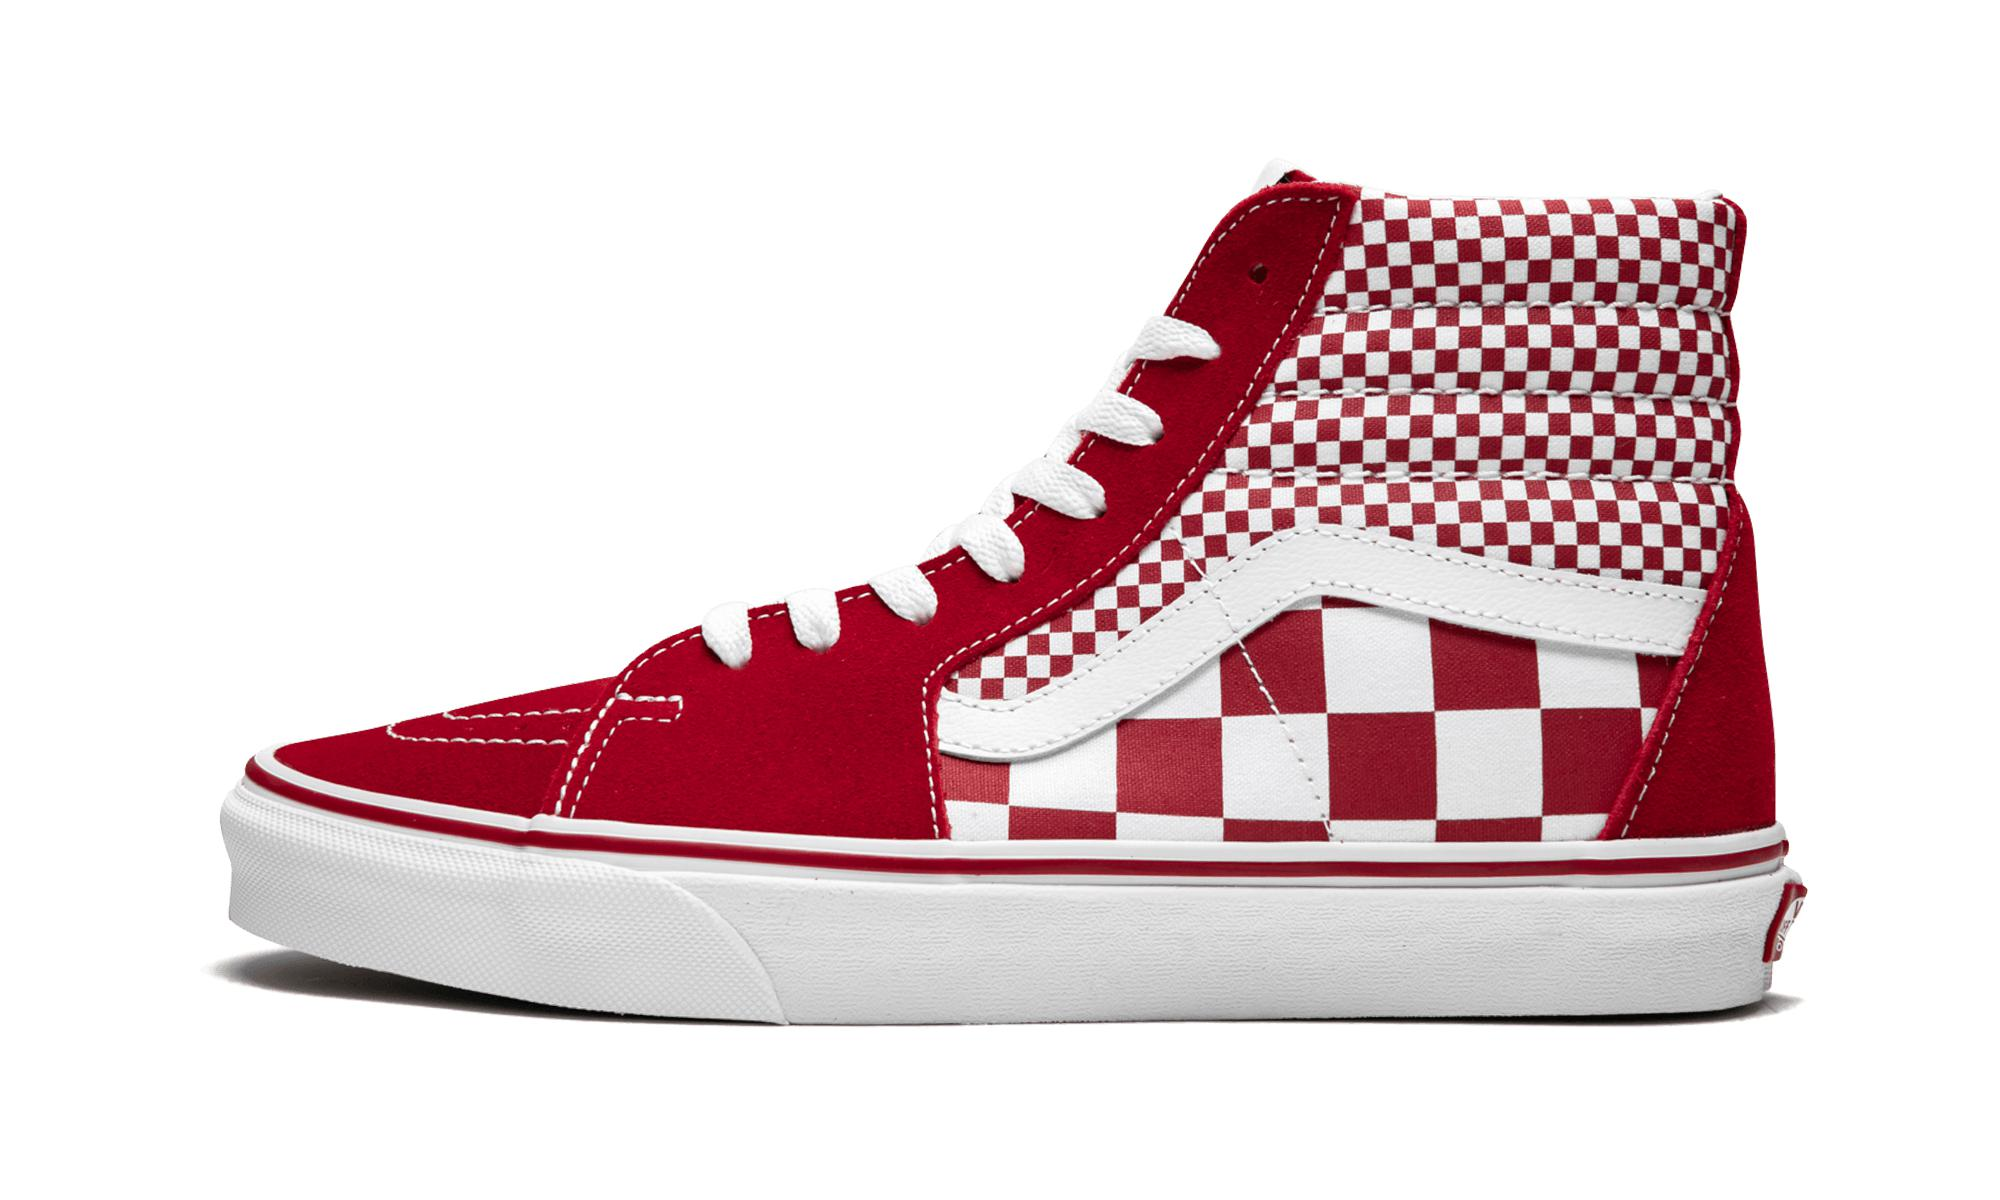 Lyst - Vans Sk8-hi Mix Checker Sneakers in Red for Men - Save 13% ff9920b57